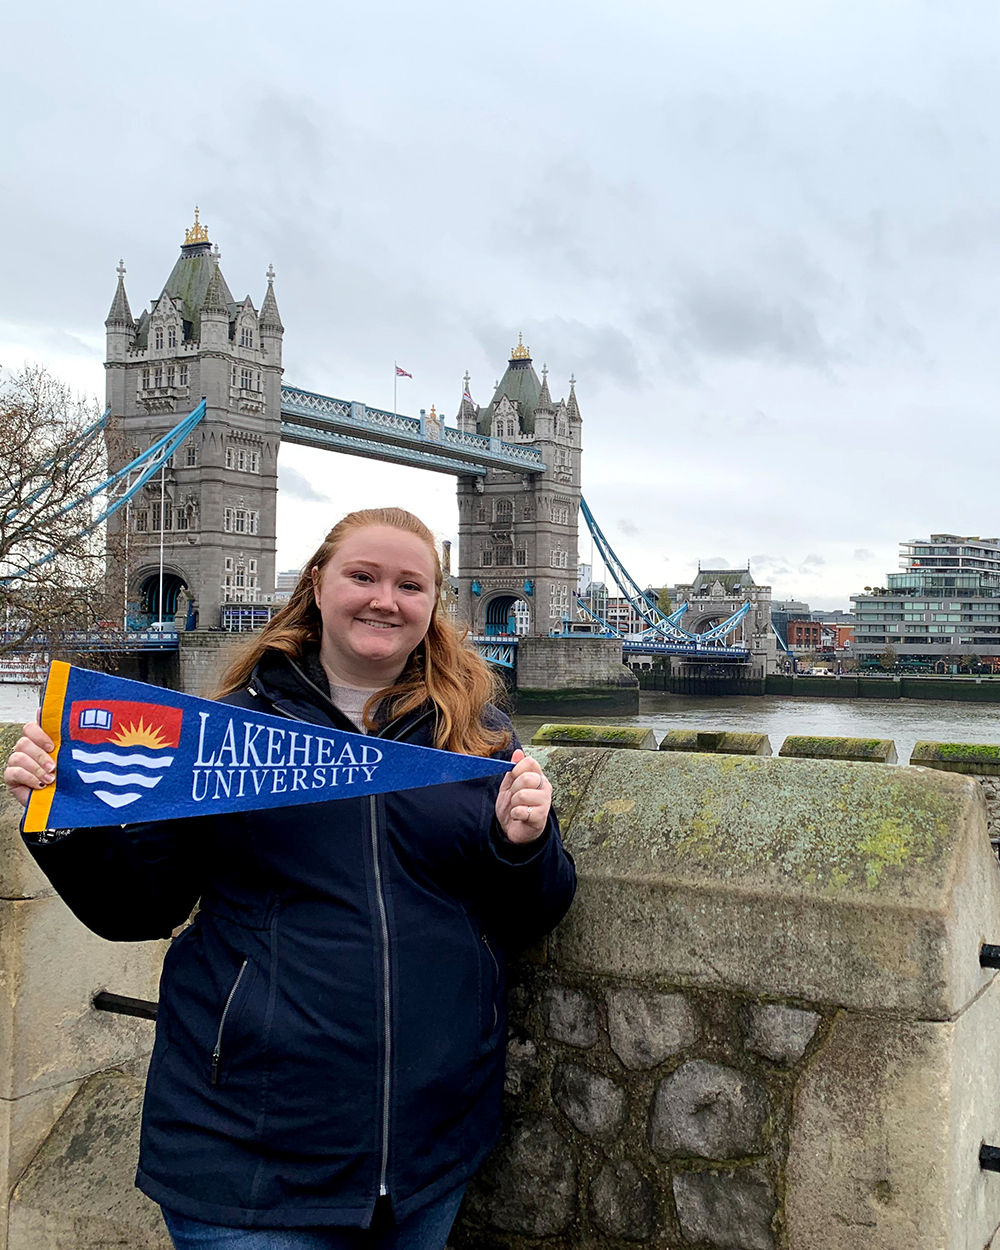 Student standing in front of Tower Bridge in London, England